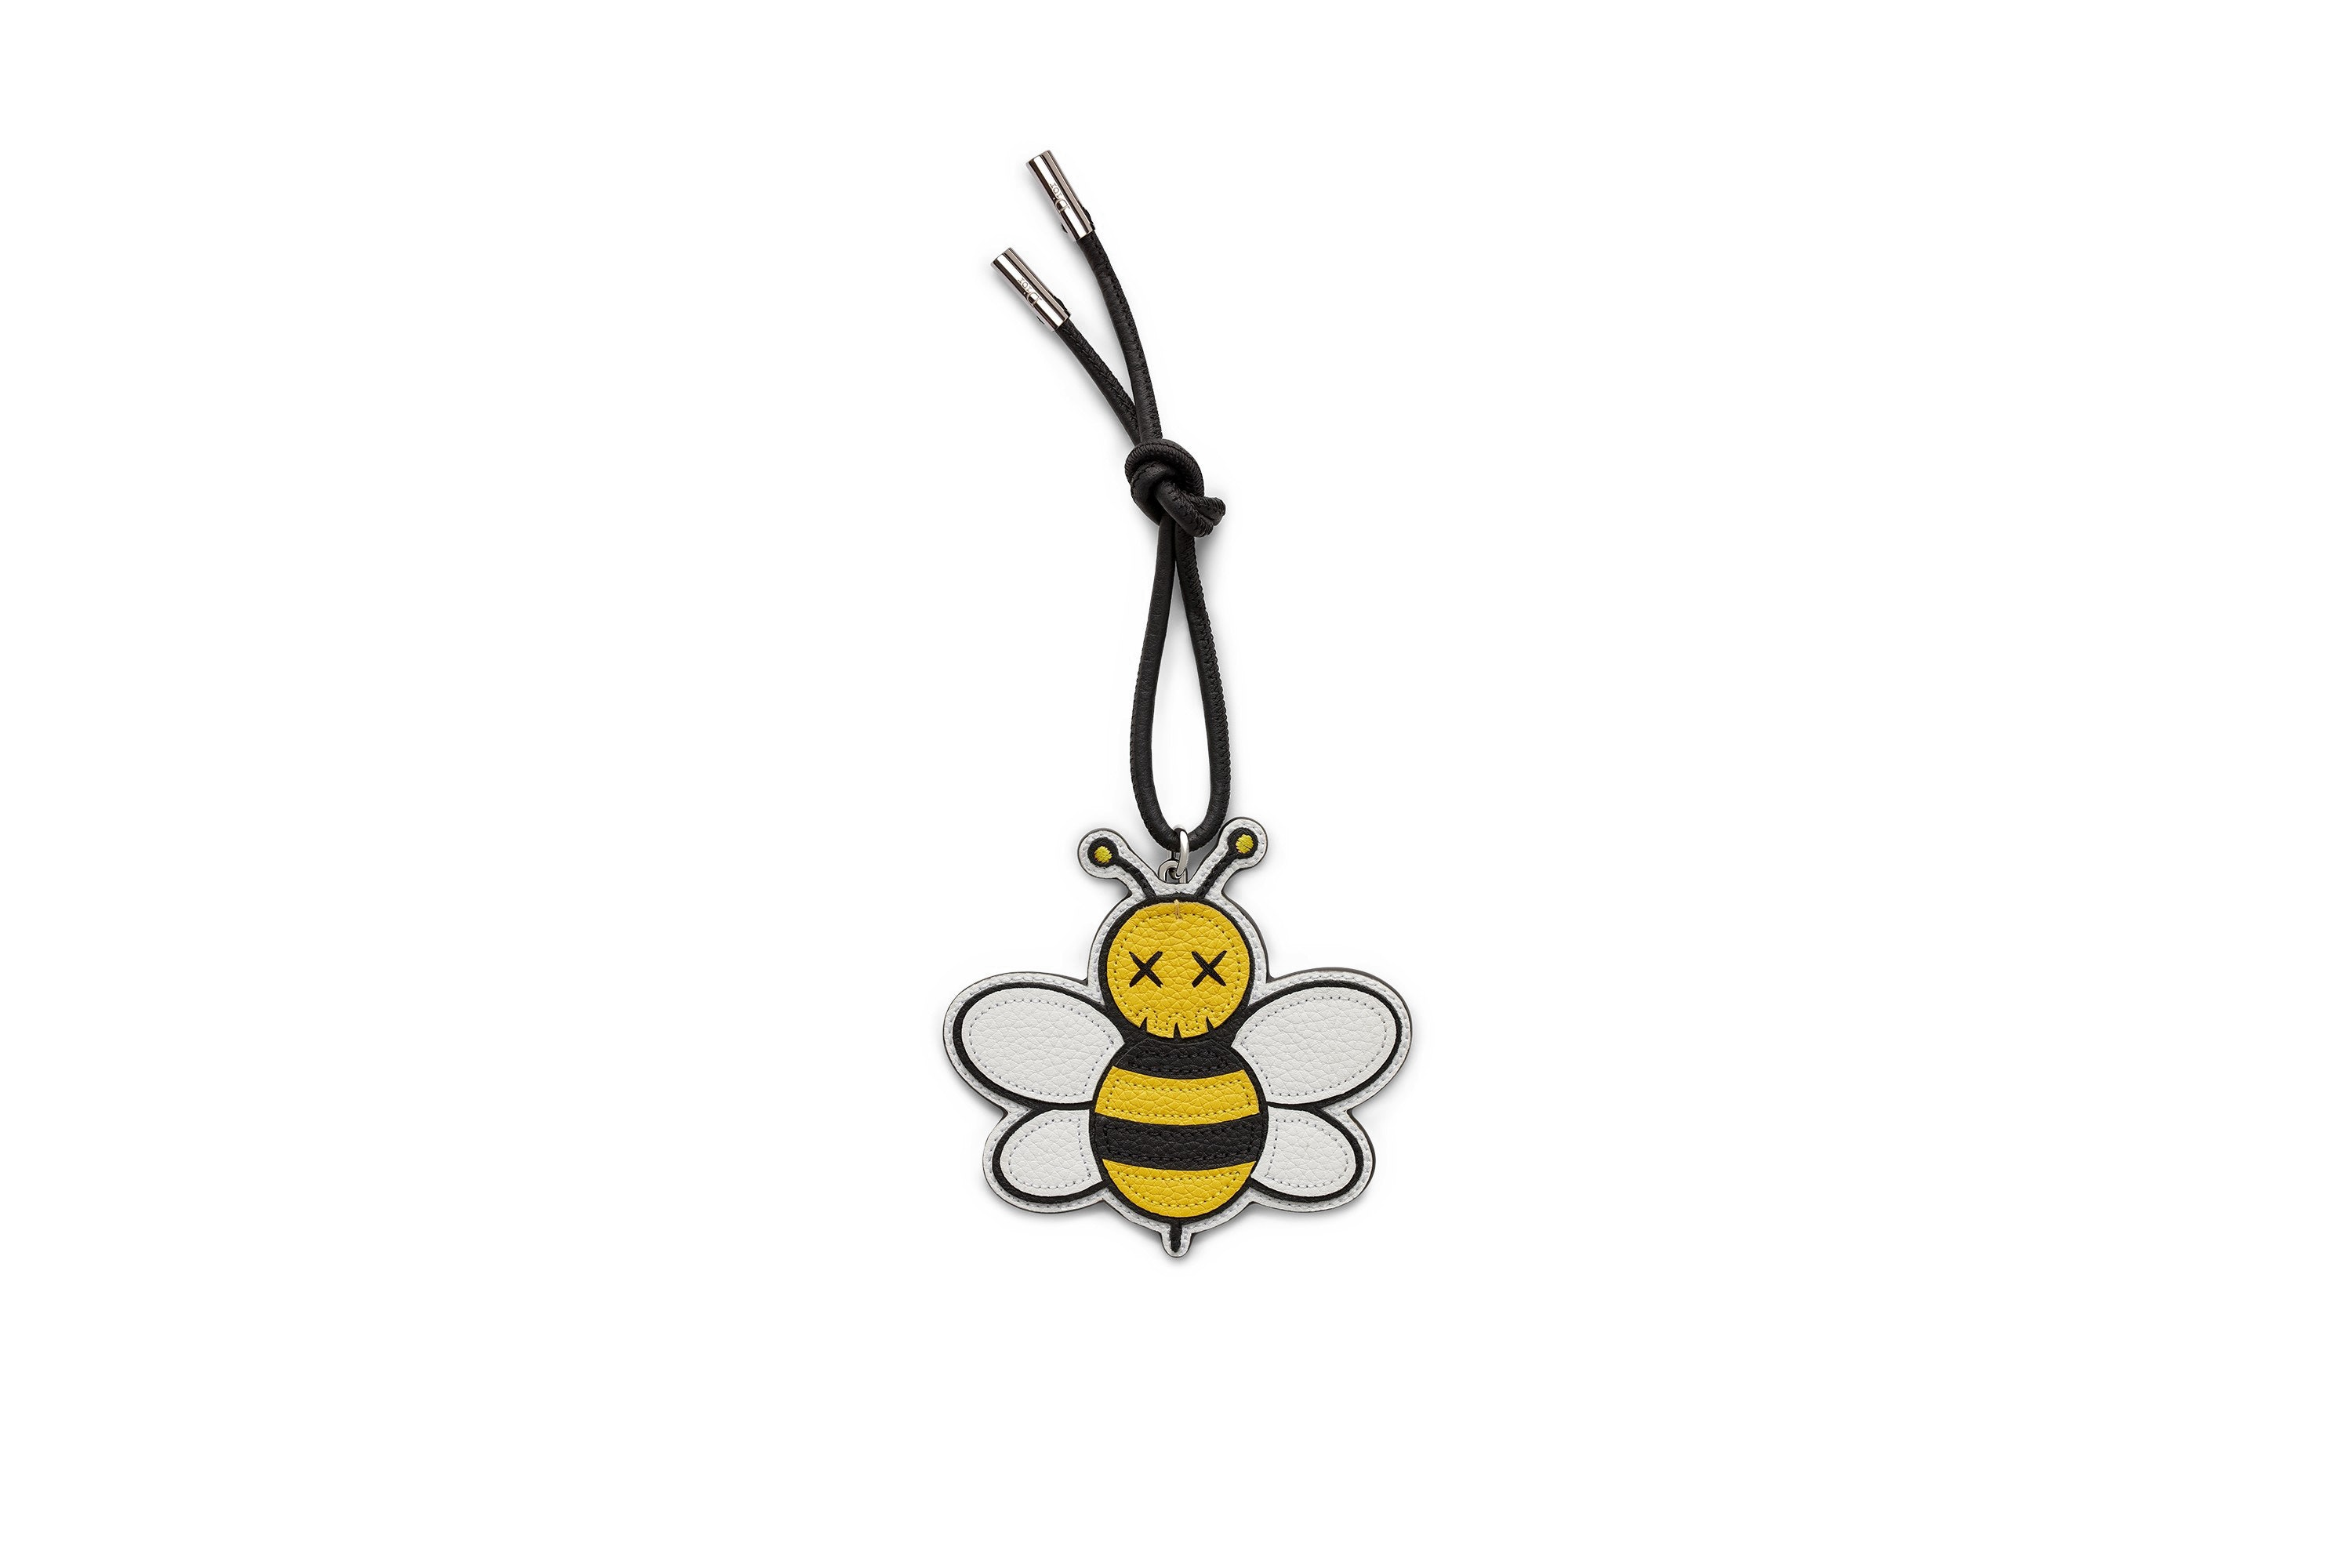 Dior x Kaws Bee Charm Yellow